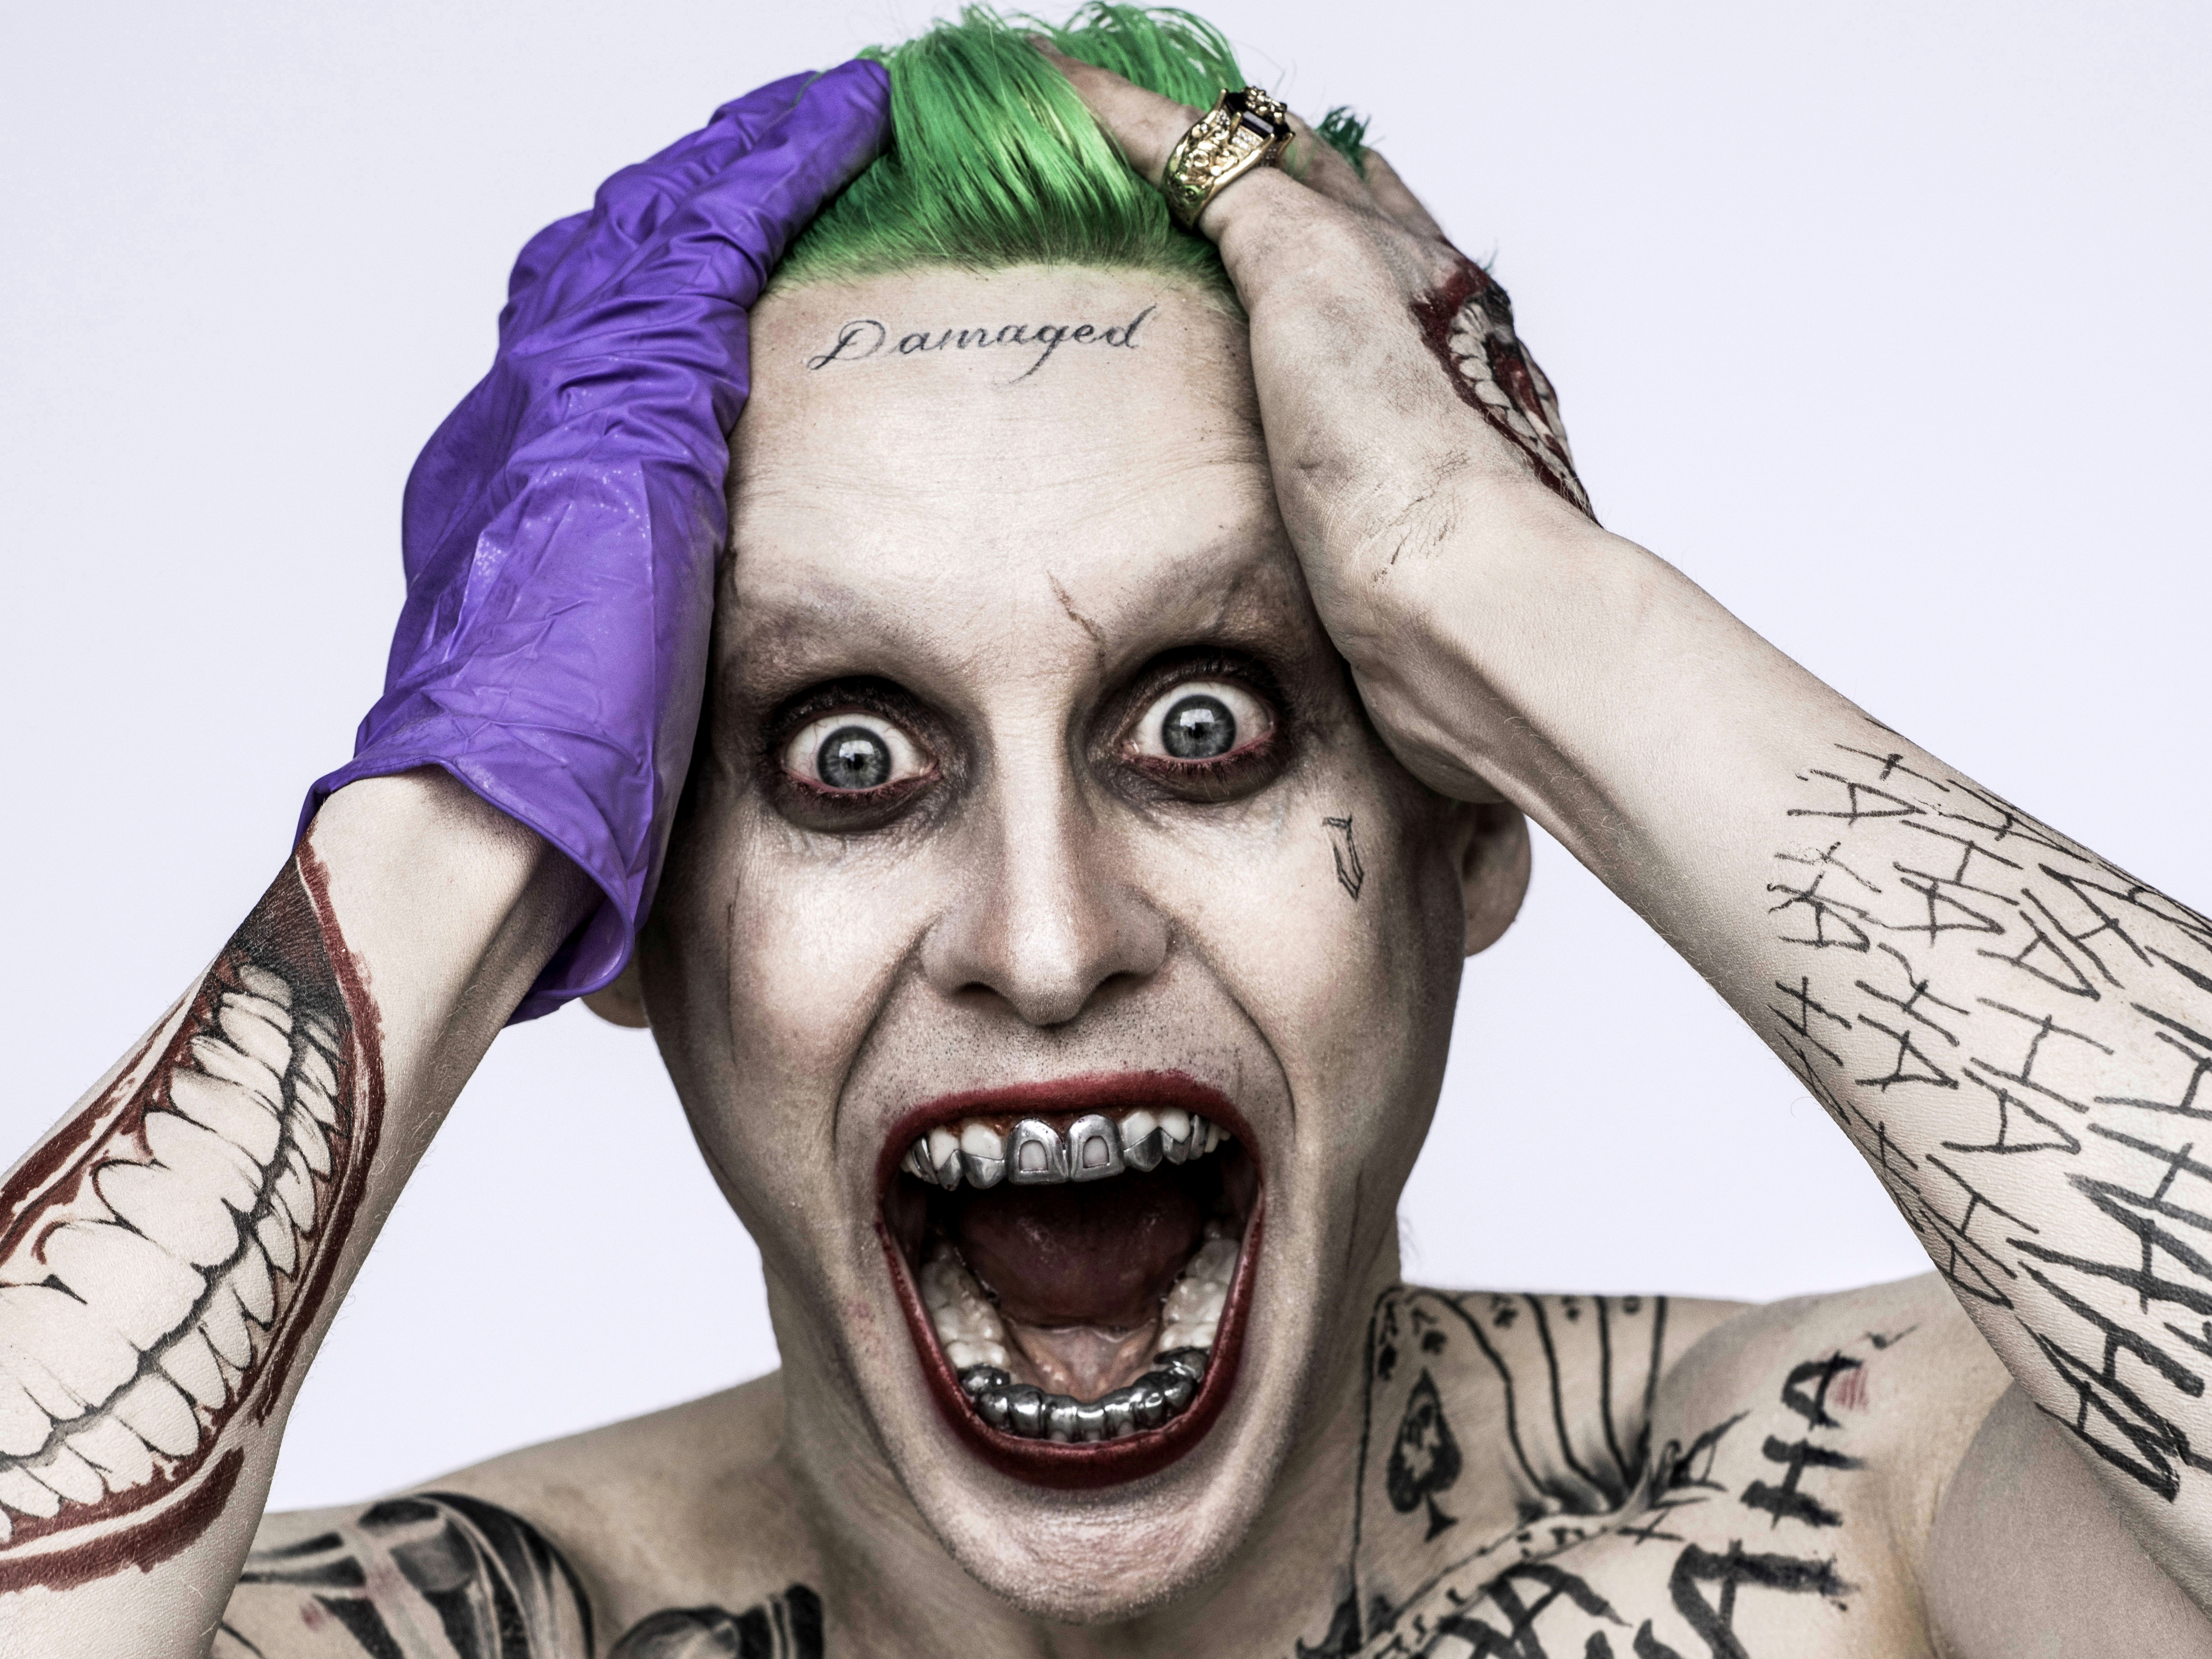 Jared leto images jared leto hd wallpaper and background photos - Harley Quinn Jared Leto Joker Margot Robbie Movie Suicide Squad Hd Wallpaper Background Id 670426